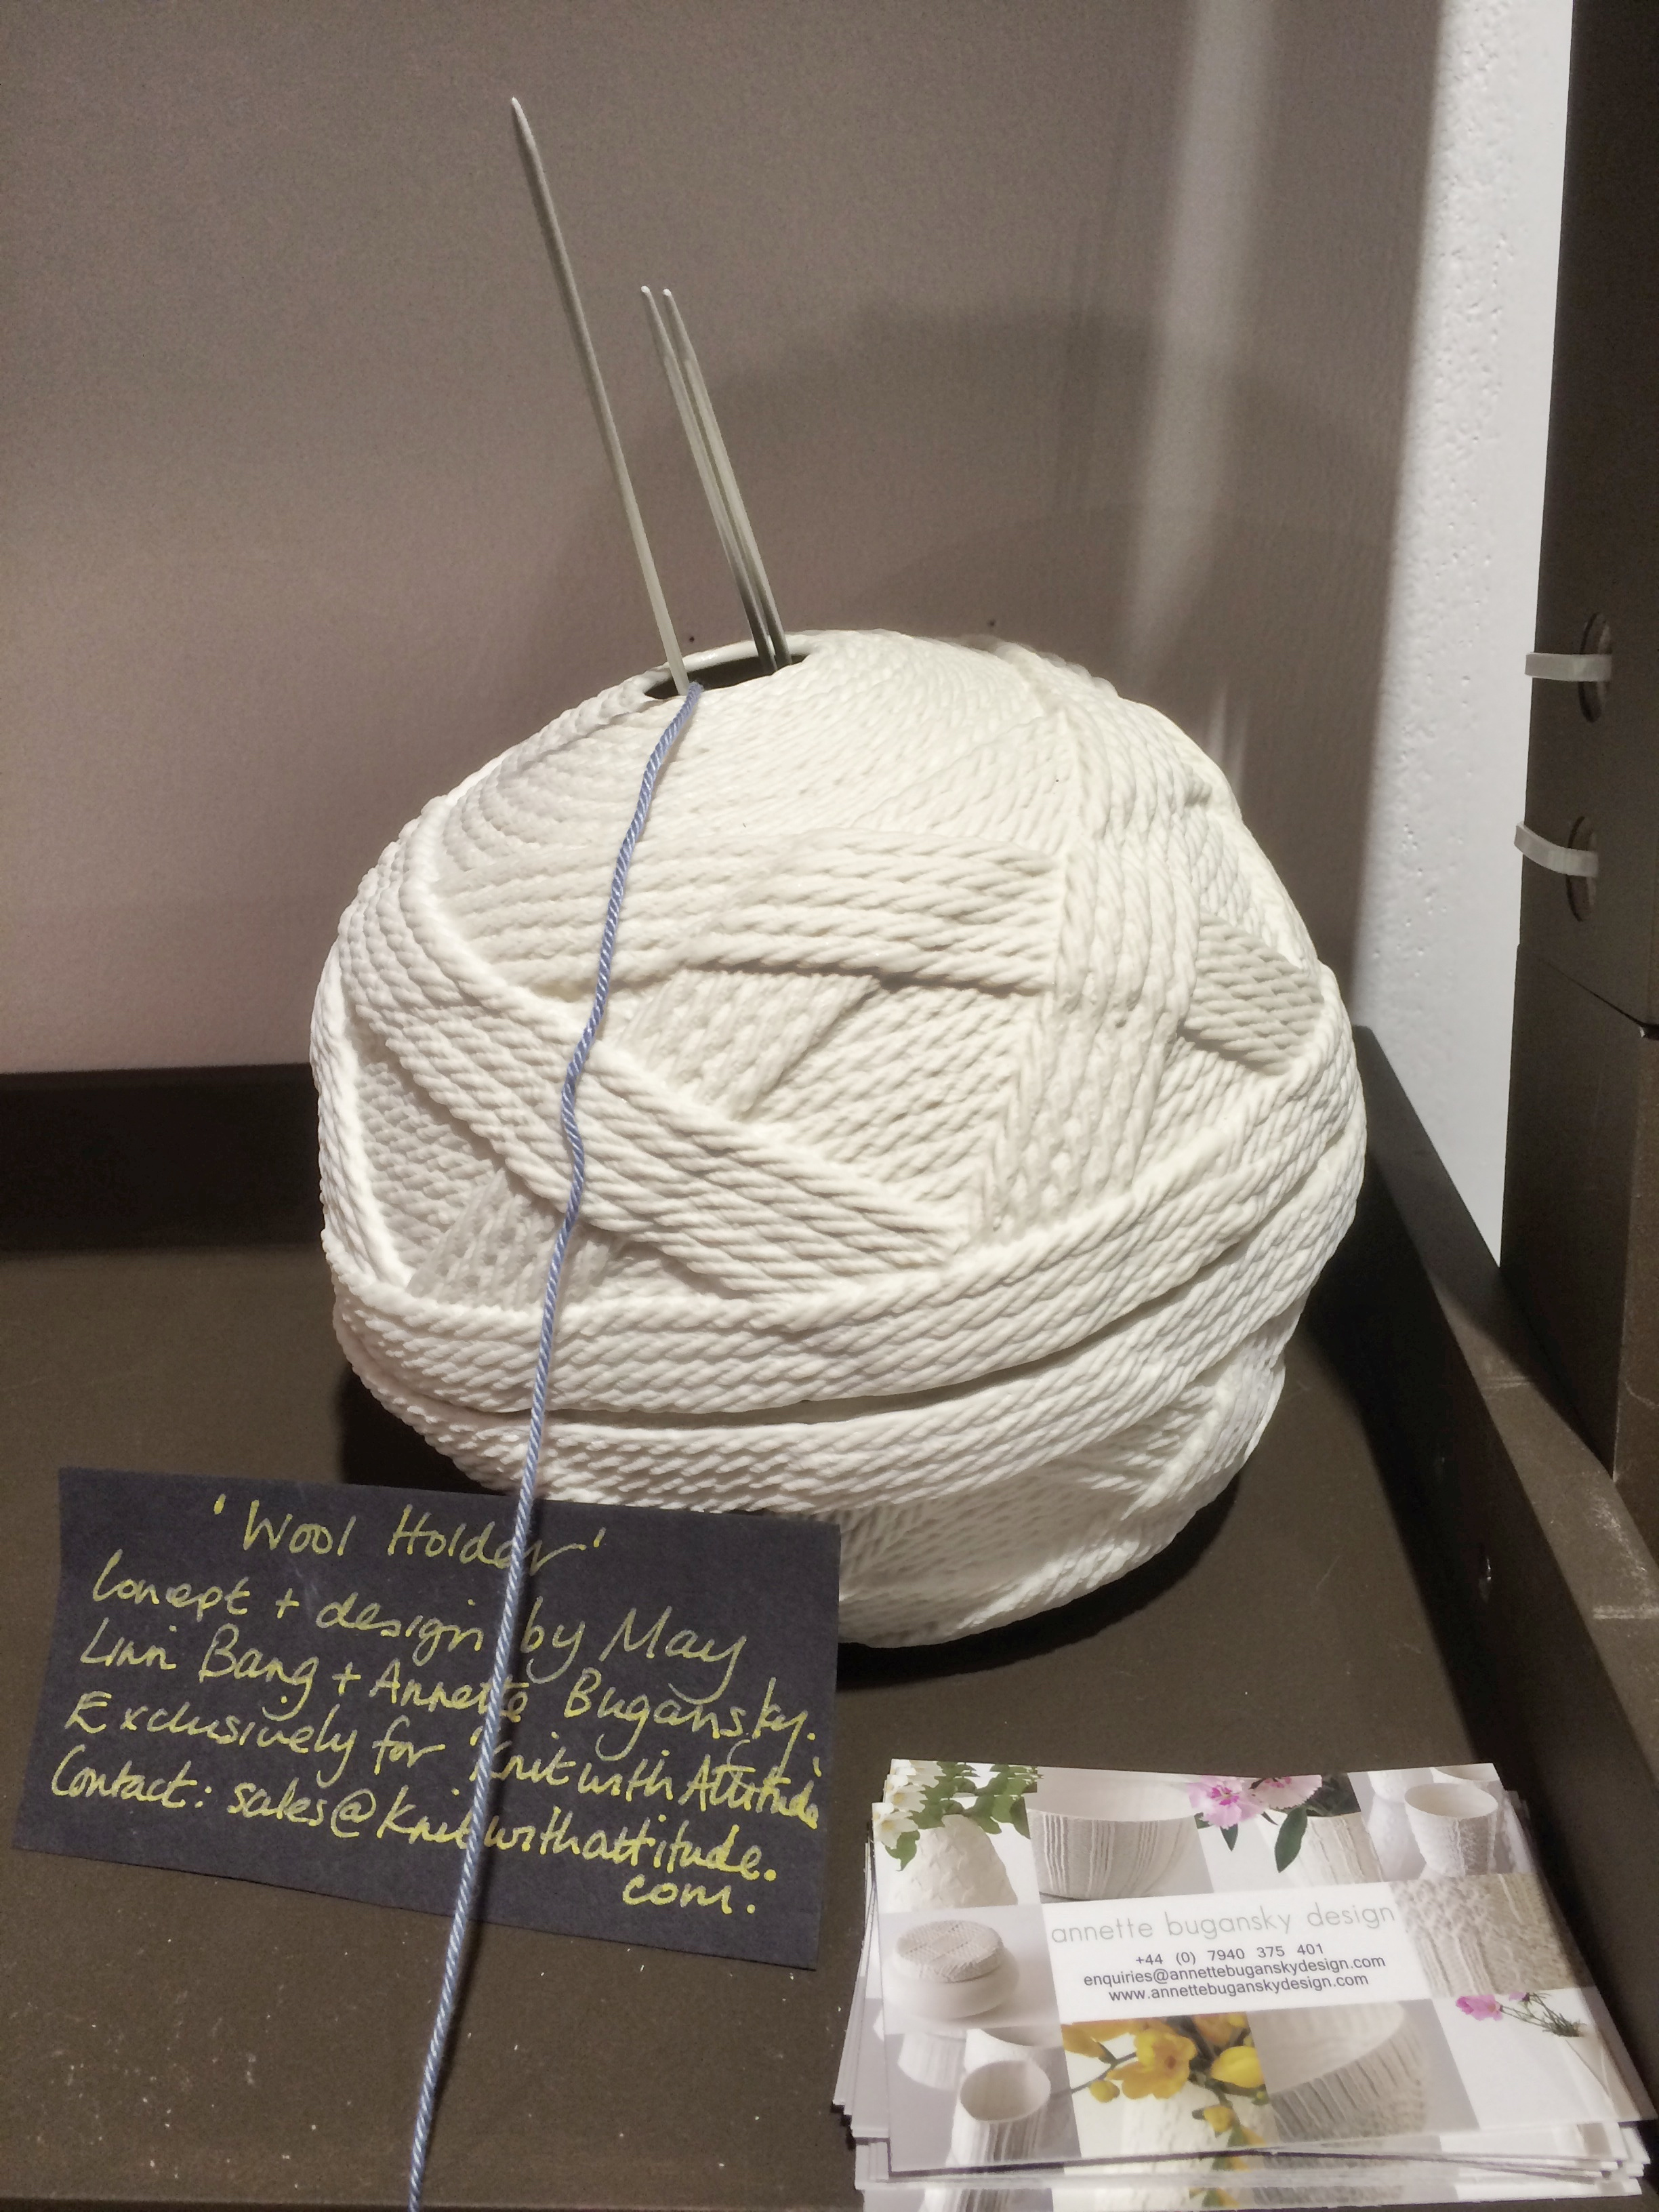 The yarn bowl collaboration between Annette Bugansky and Knit With Attitude - the concept piece seen here at the MADE London show.